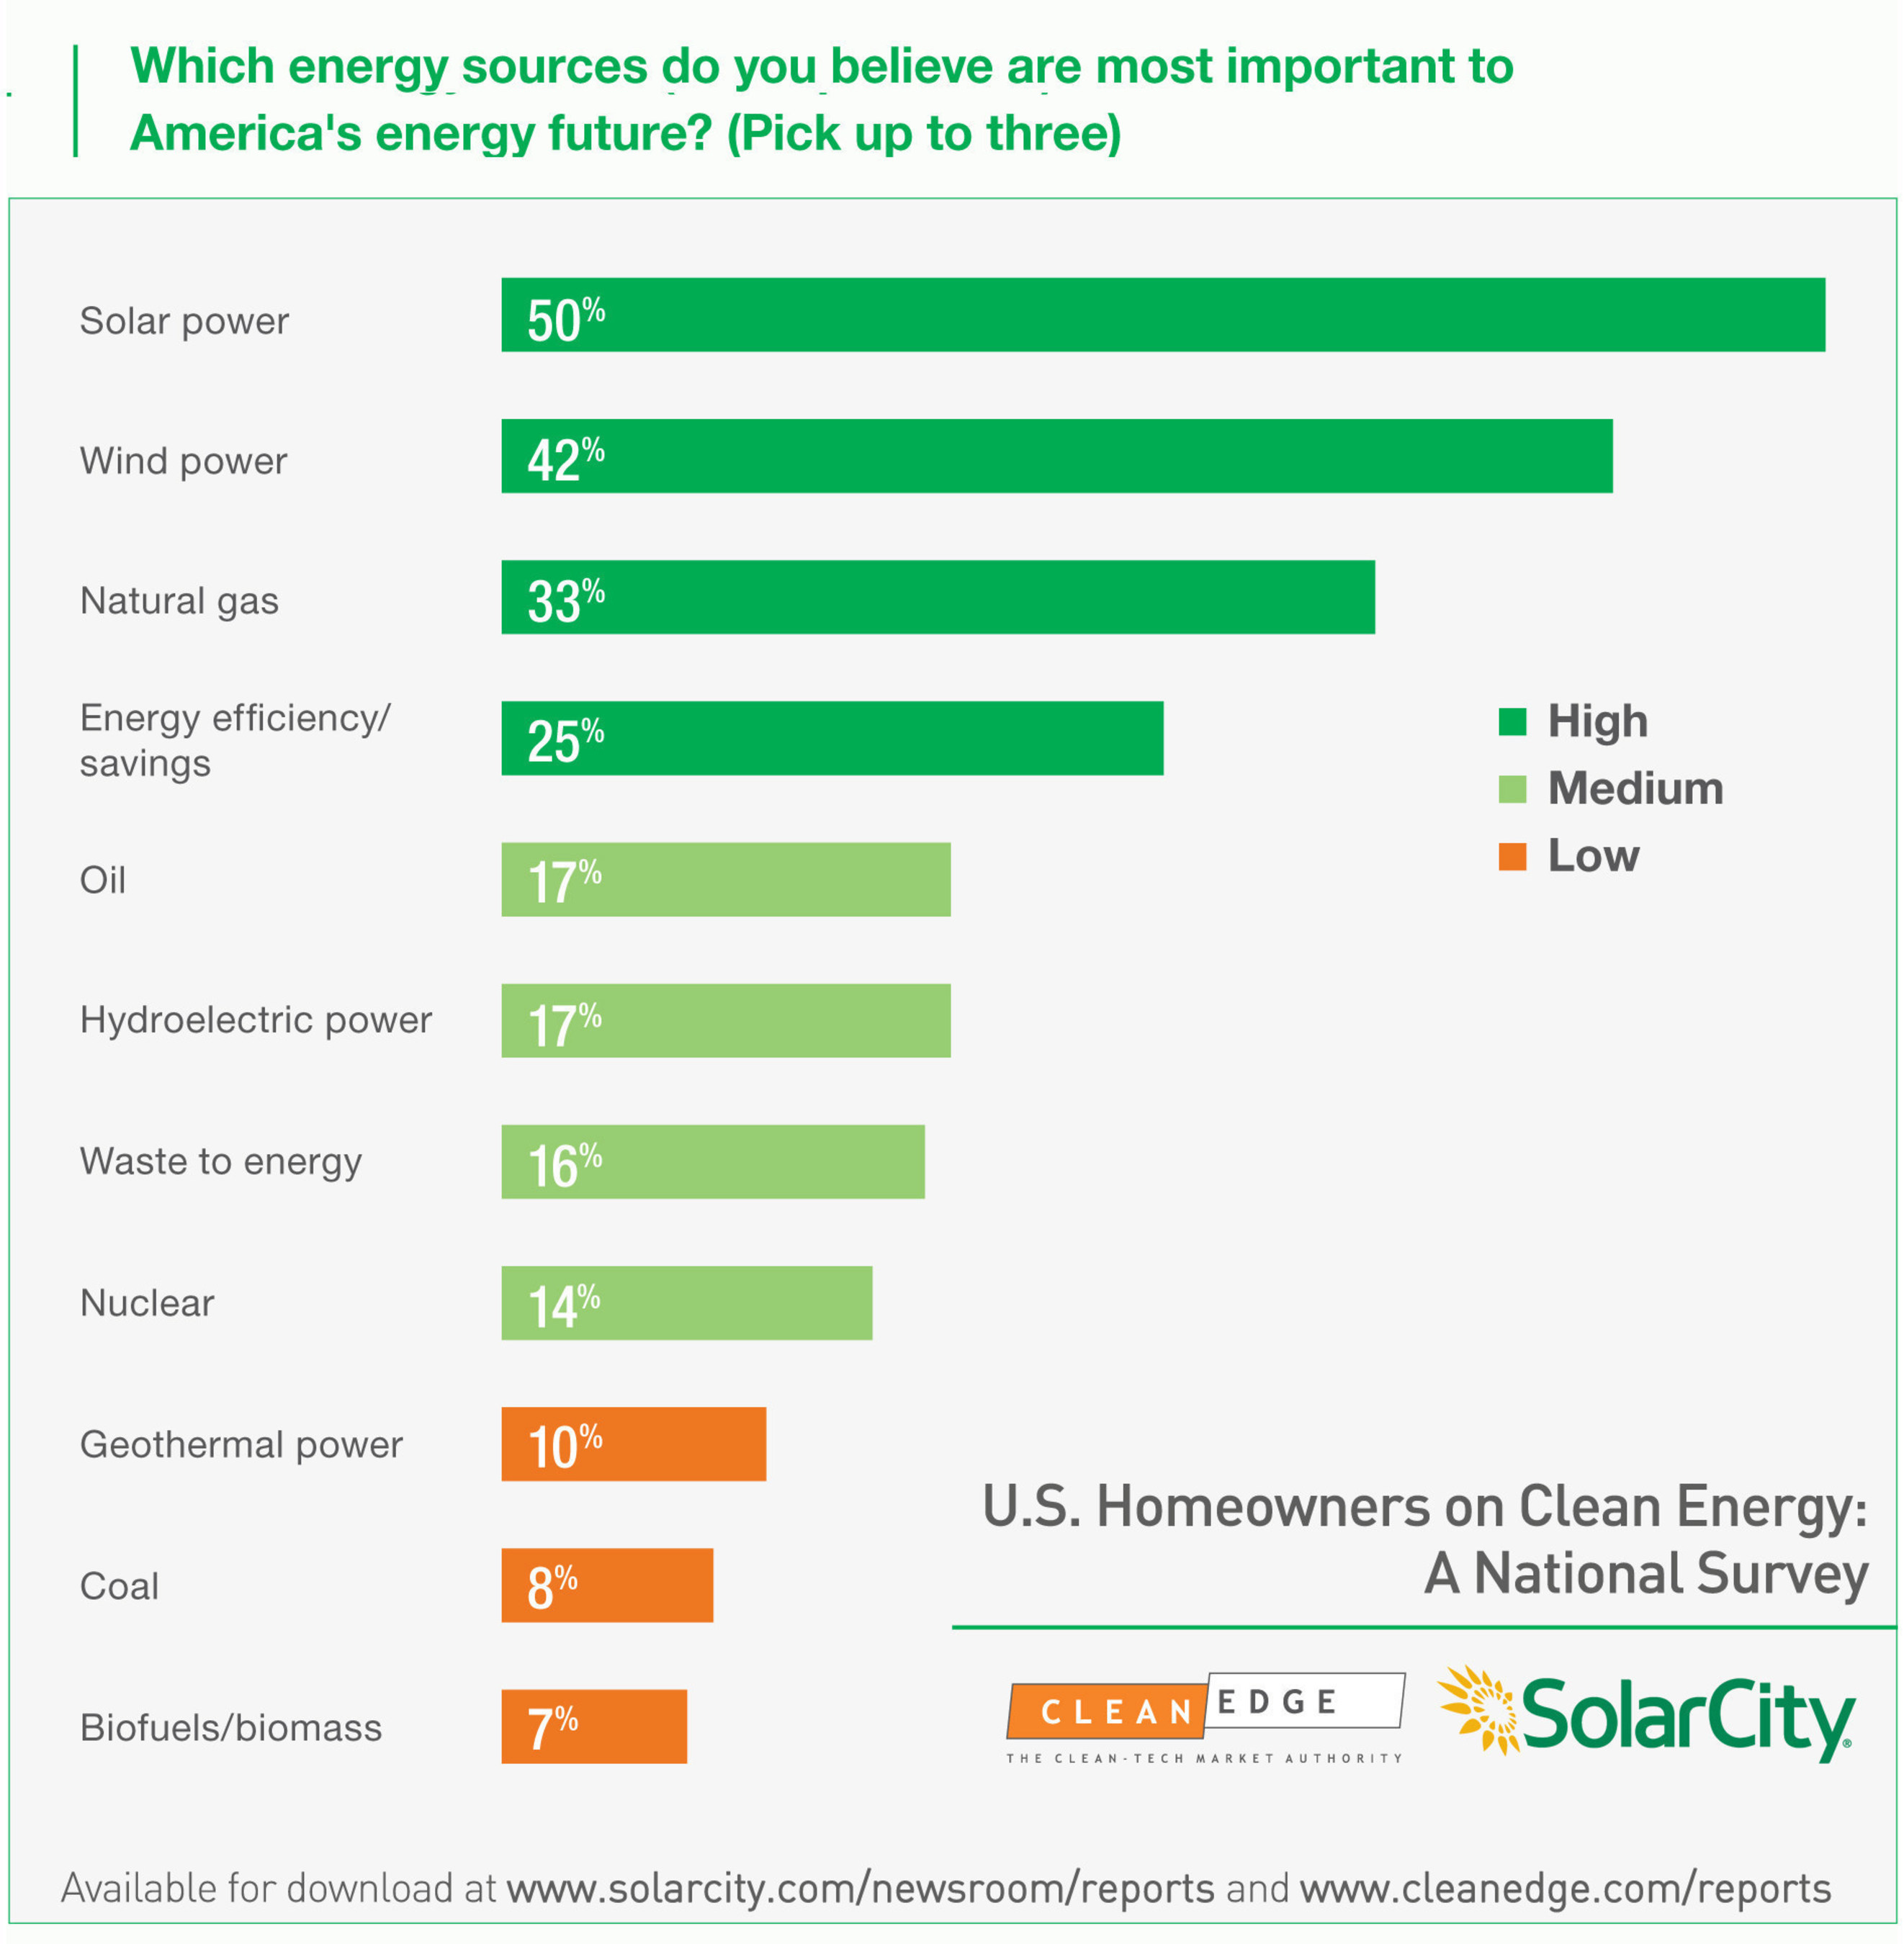 When homeowners were asked to pick which specific energy sources were most important to the nation's ...